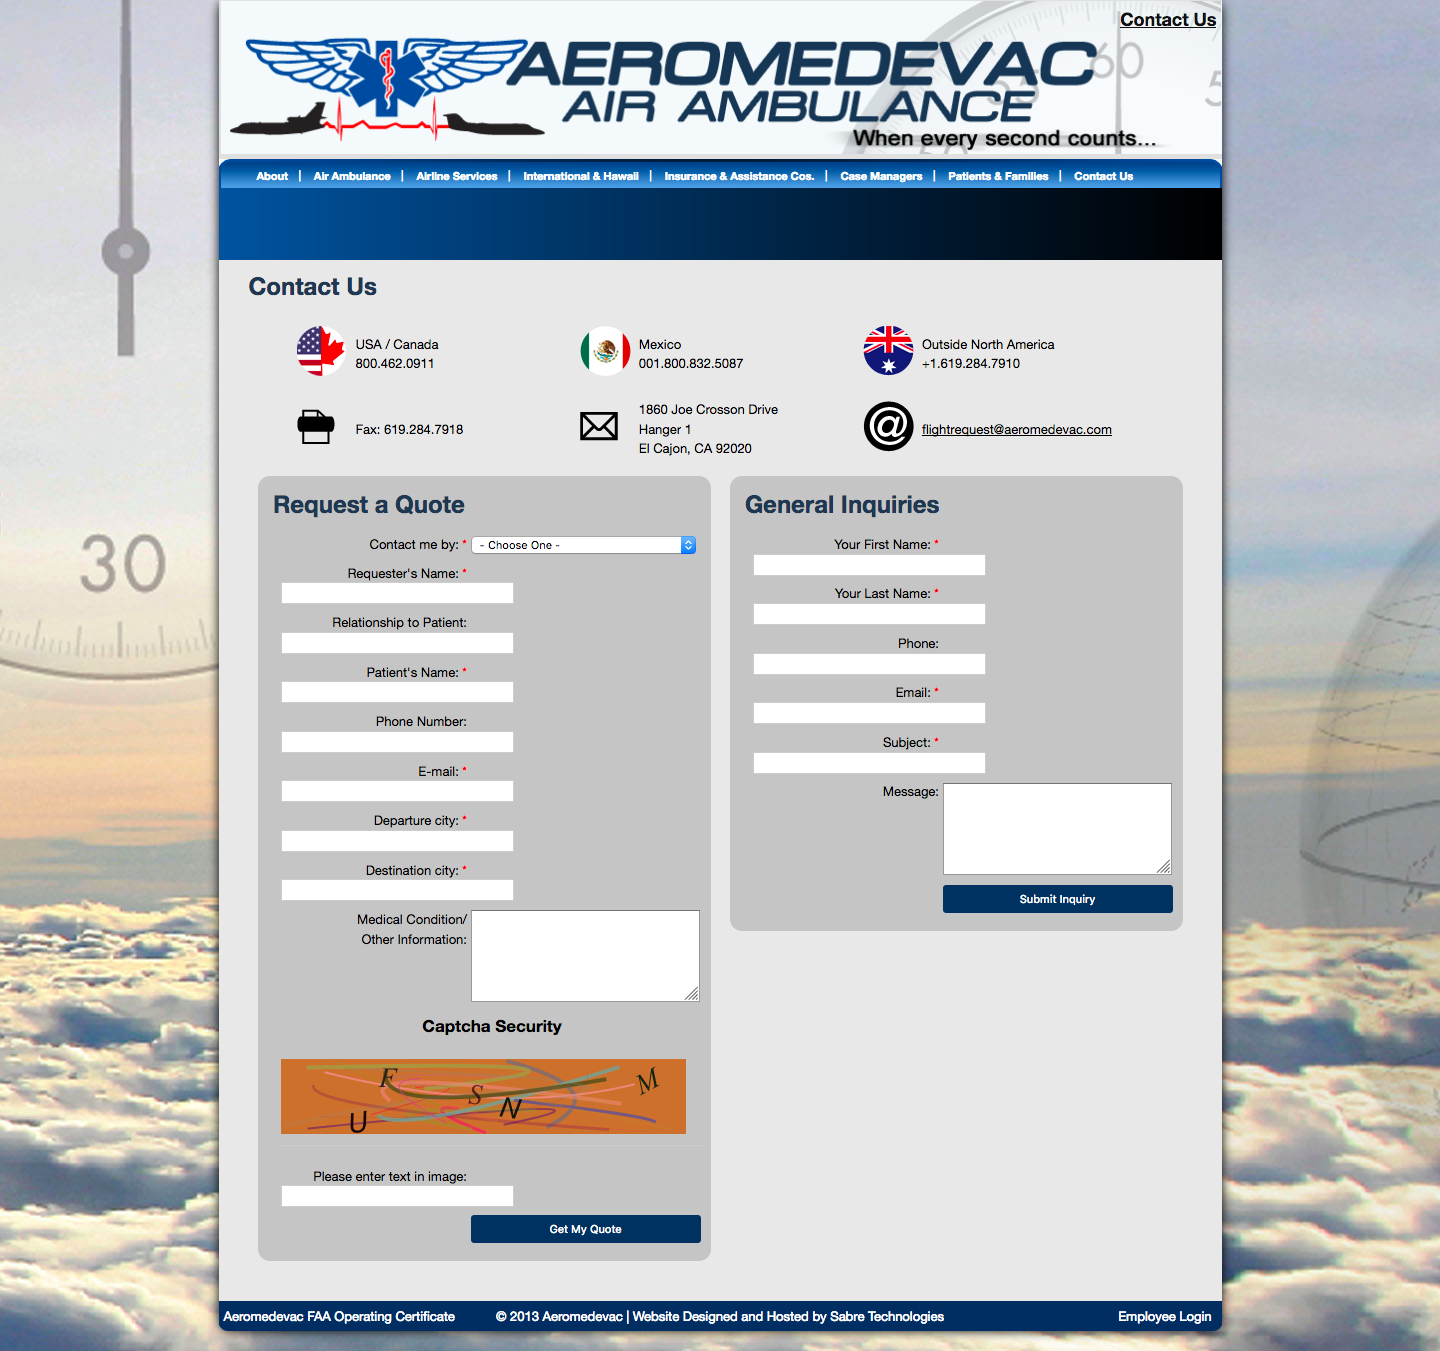 Aeromedevac Air Ambulance Insurance Online Login Help